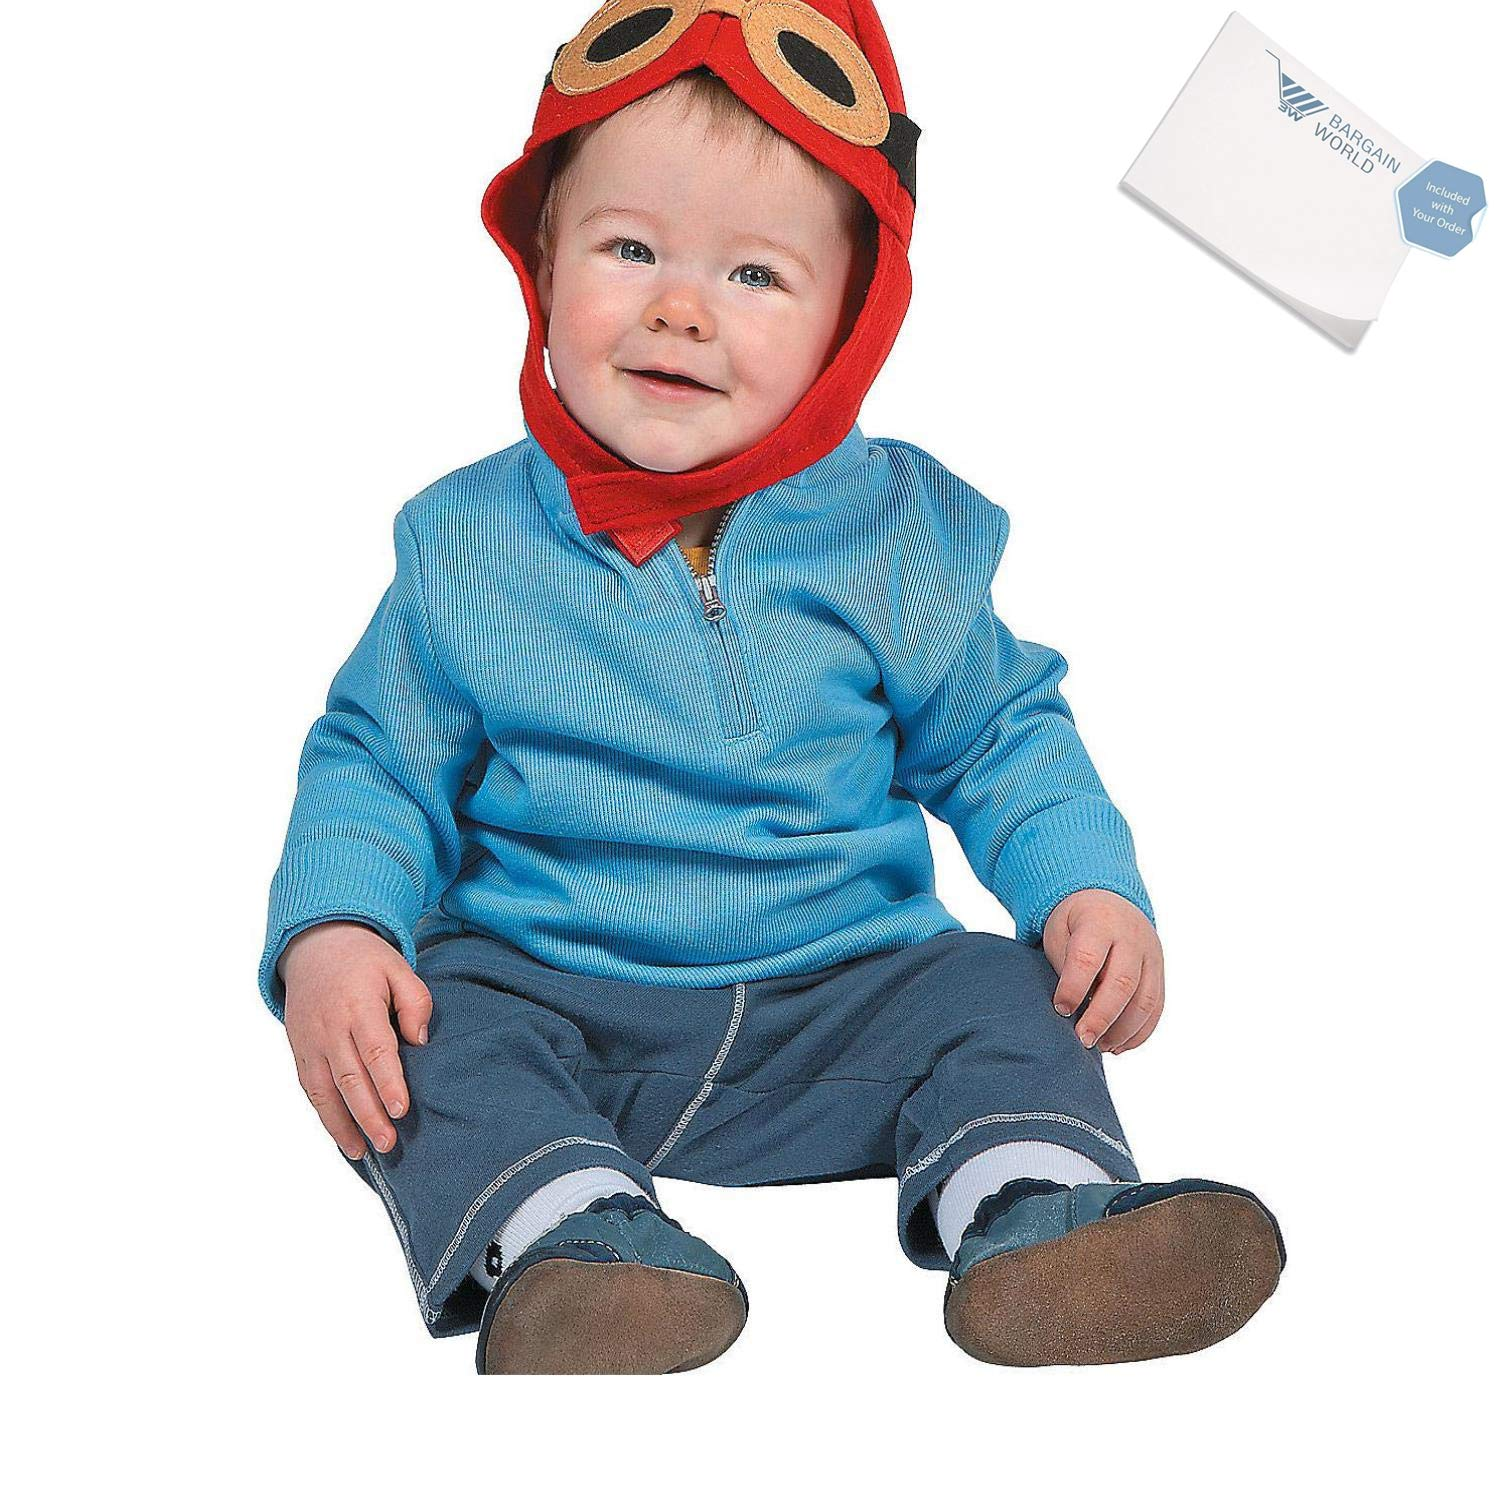 Felt Baby Aviator Hat (With Sticky Notes)